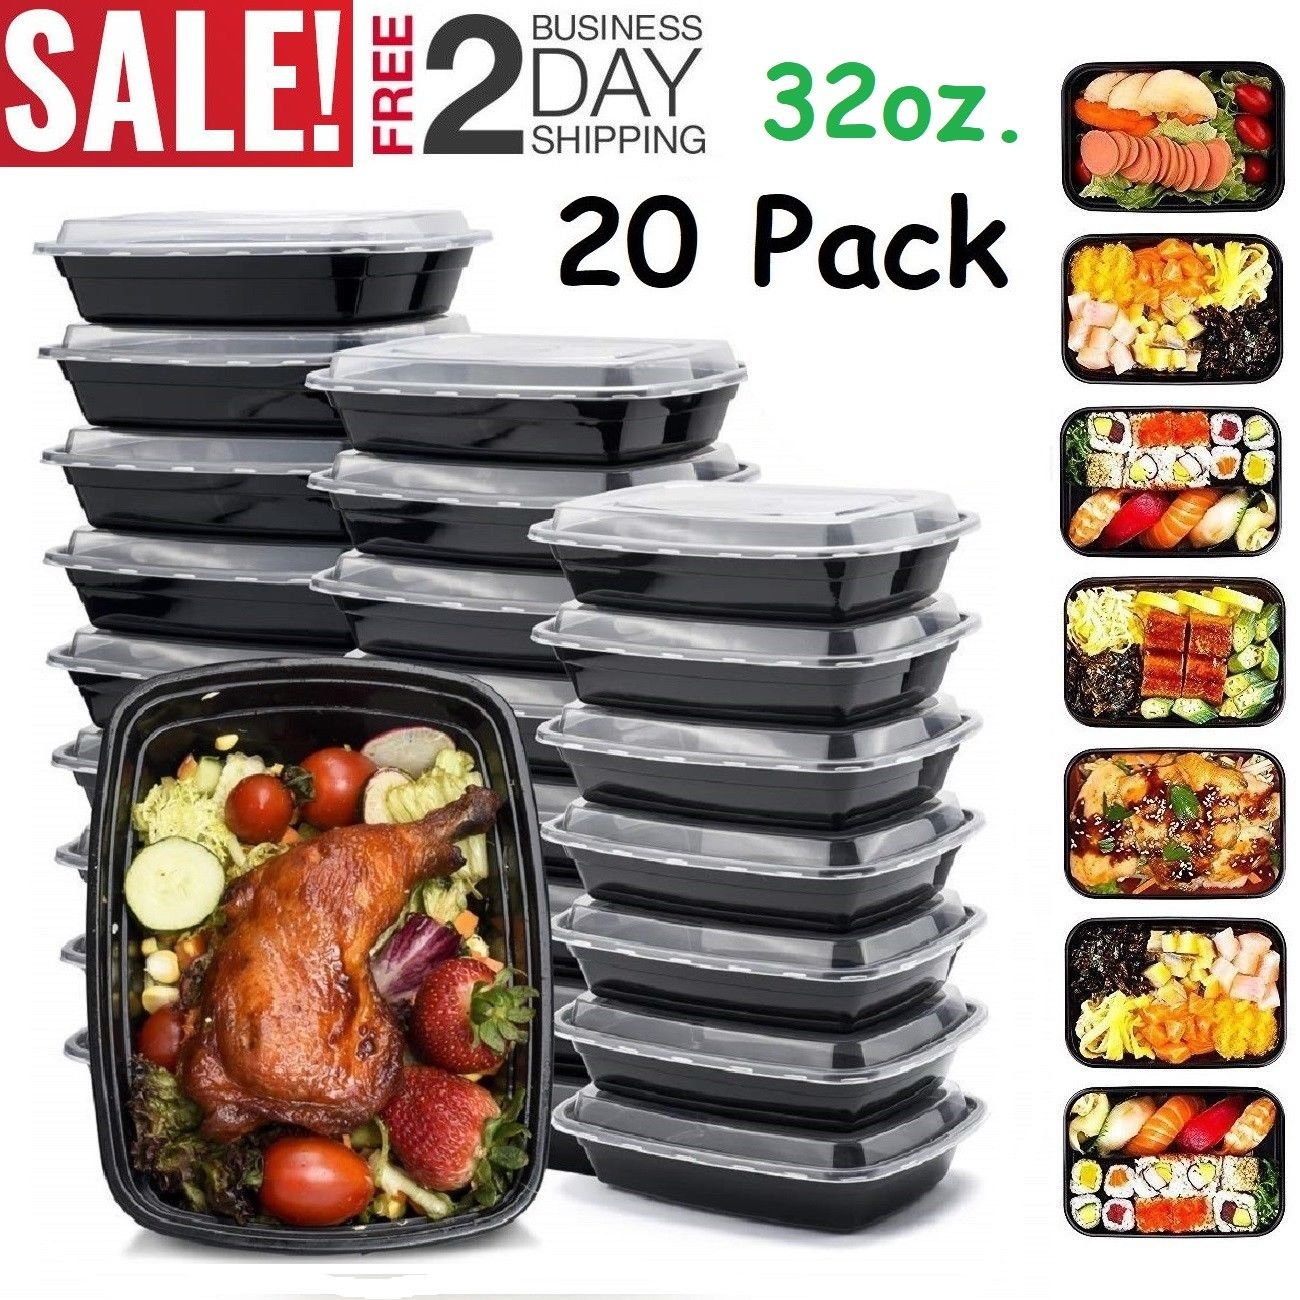 20 Pack Meal Prep Containers Food Storage 1 Compartment Reusable Microwave Safe 1